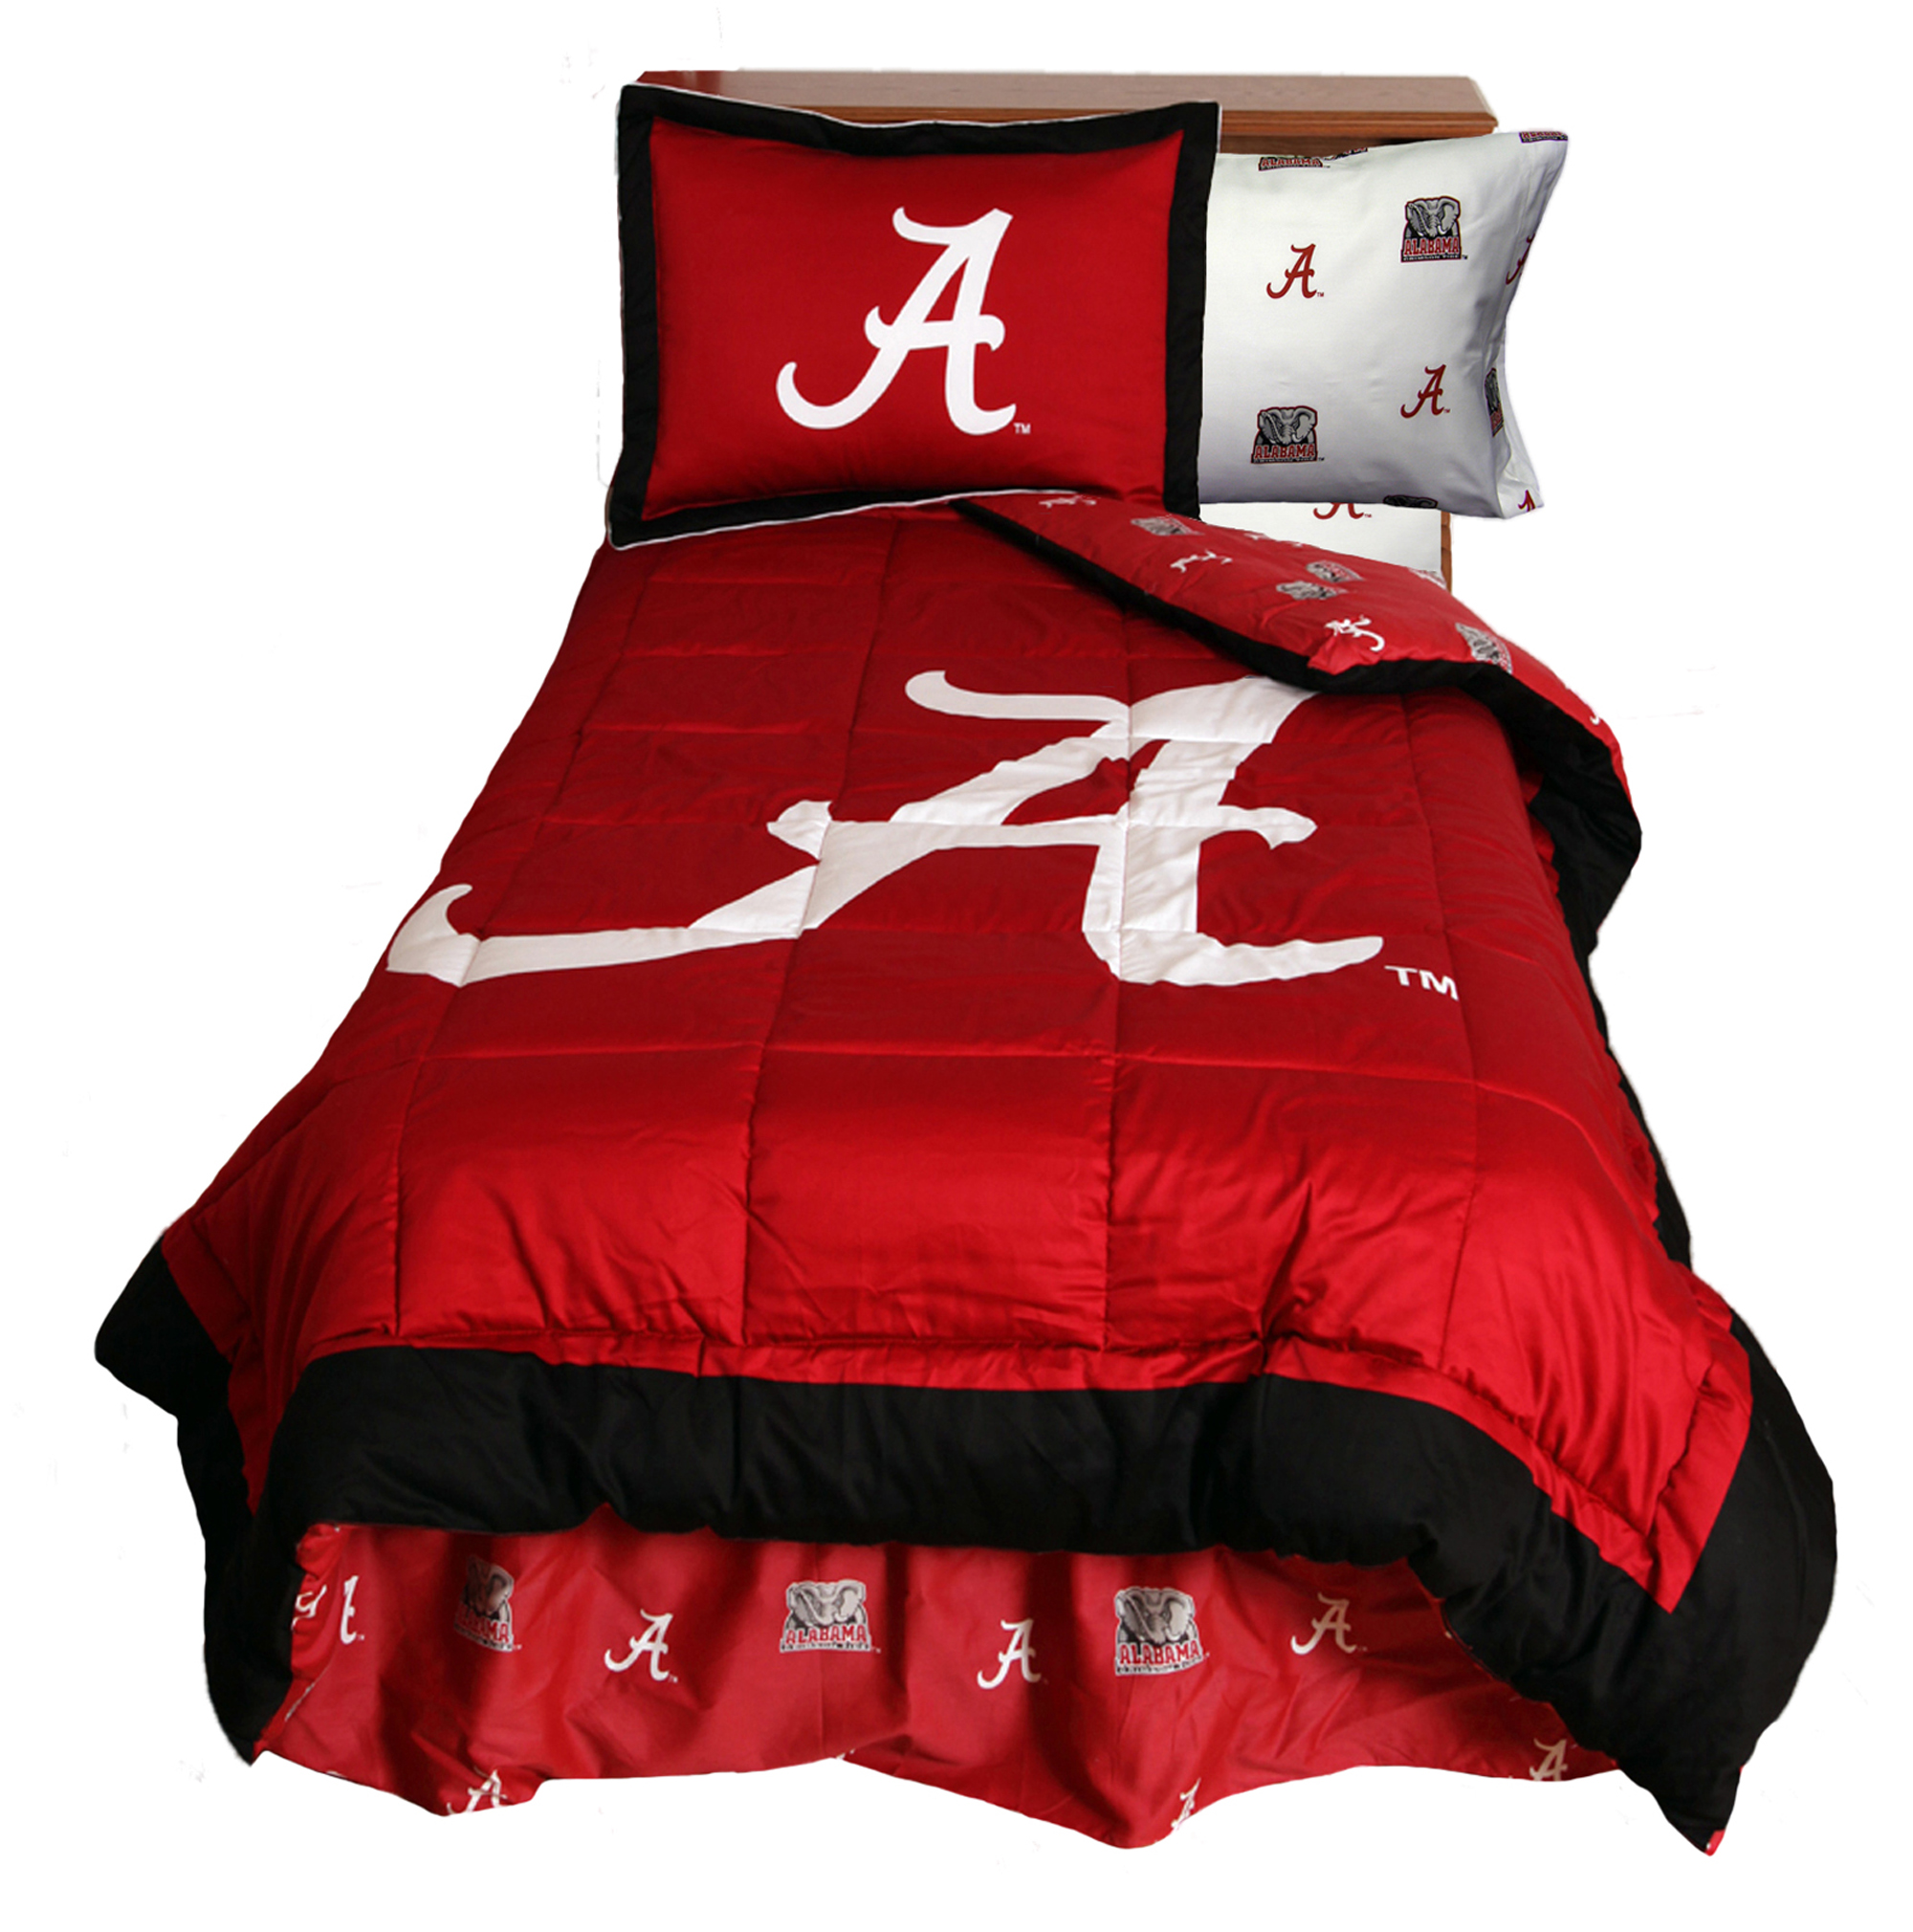 College Covers NCAA Alabama Reversible Comforter Set